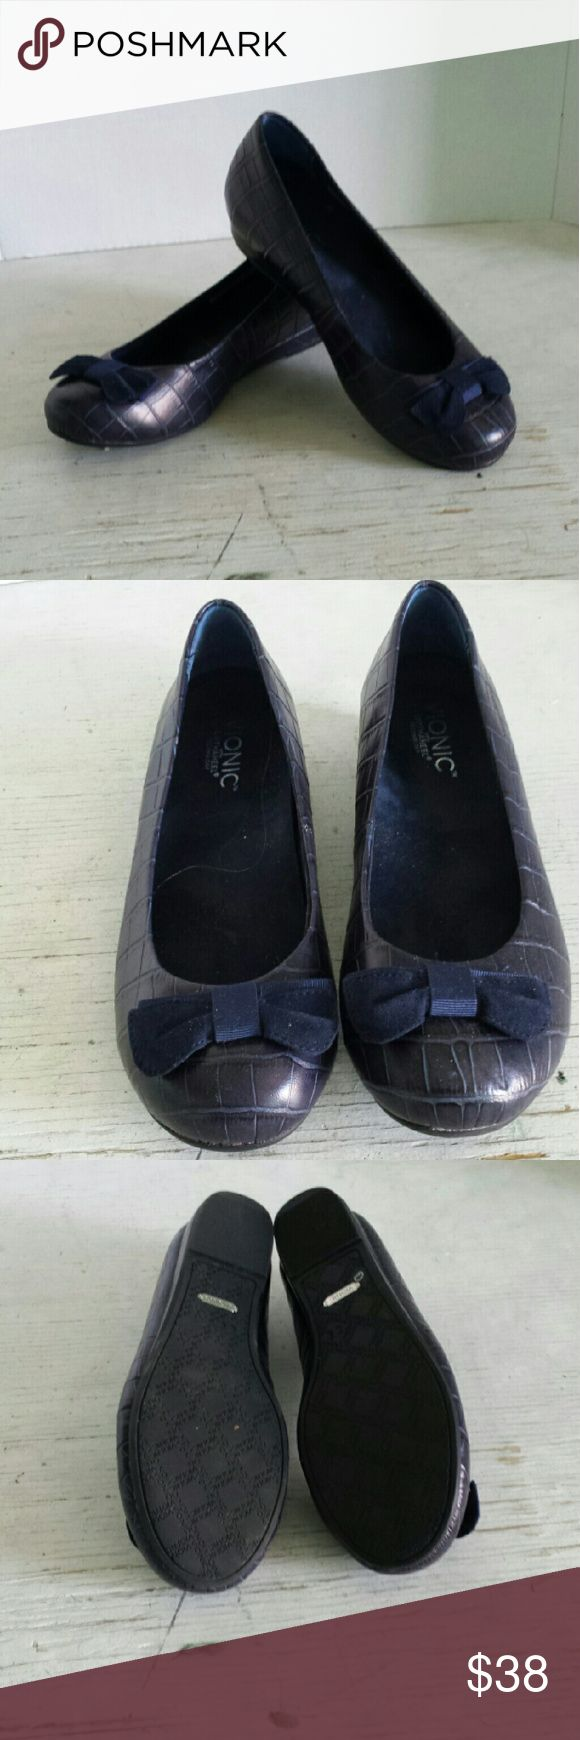 Vionic Navy Ballet Flat A very pretty pair of Vionic ballet flats with a suede bow on the toe.  In very good condition,  they appear unworn. Vionic Shoes Flats & Loafers